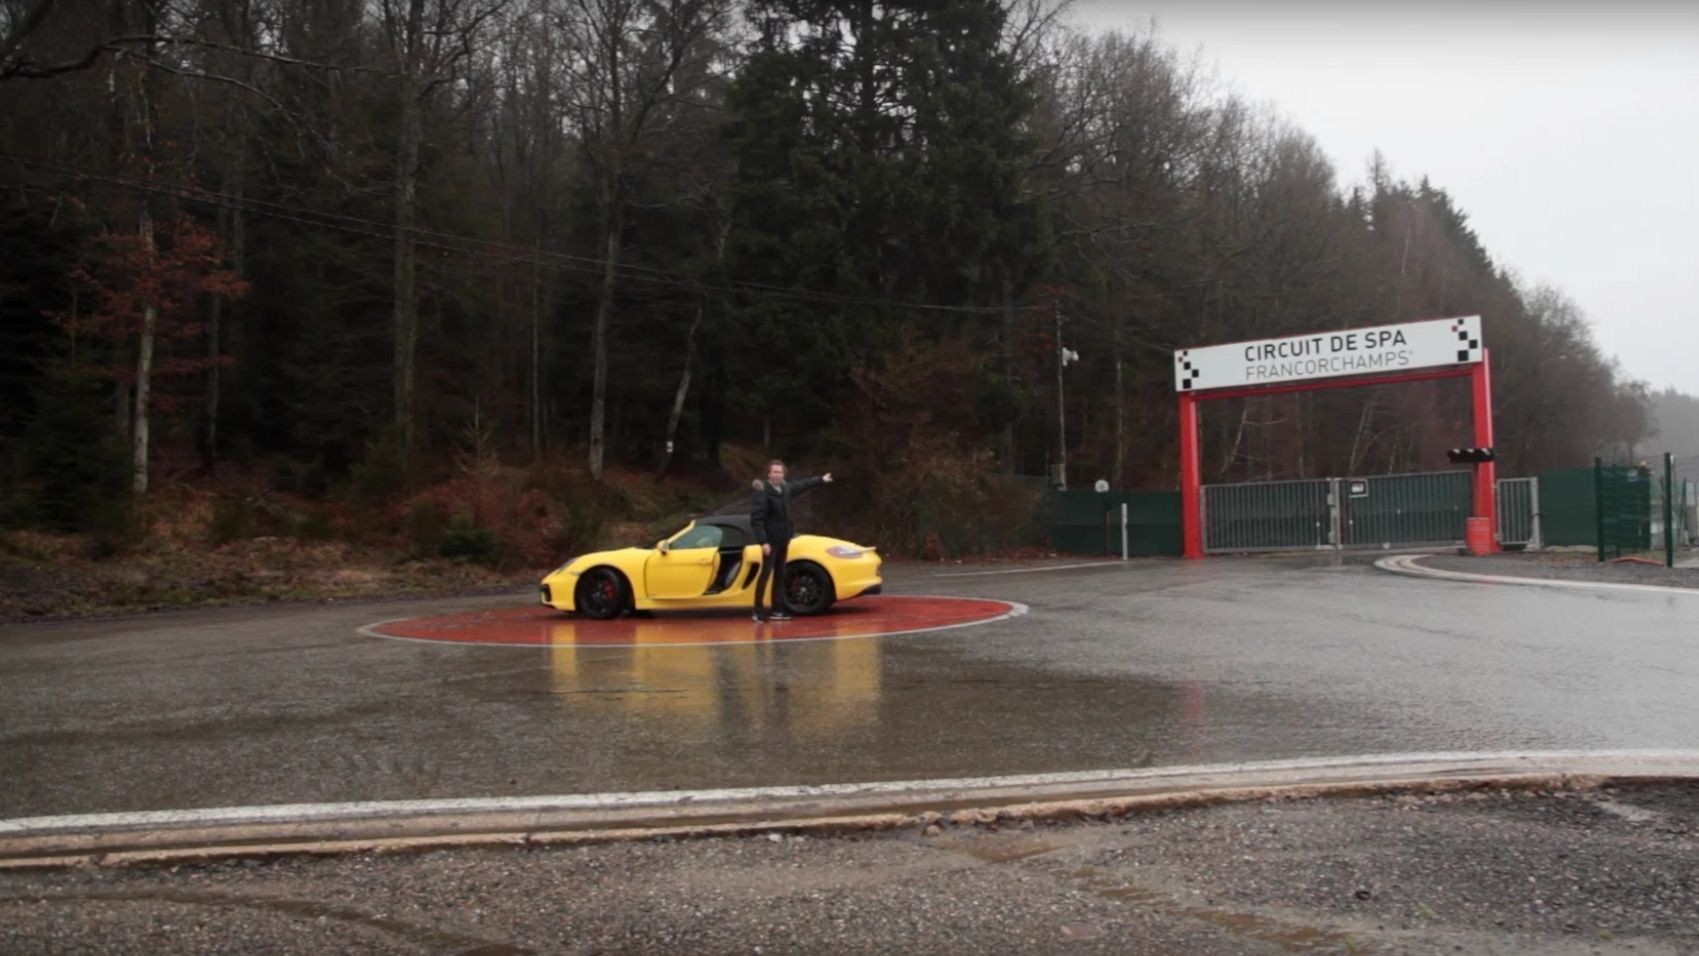 Throwback Thursday: Met een Boxster GTS naar Spa-Francorchamps